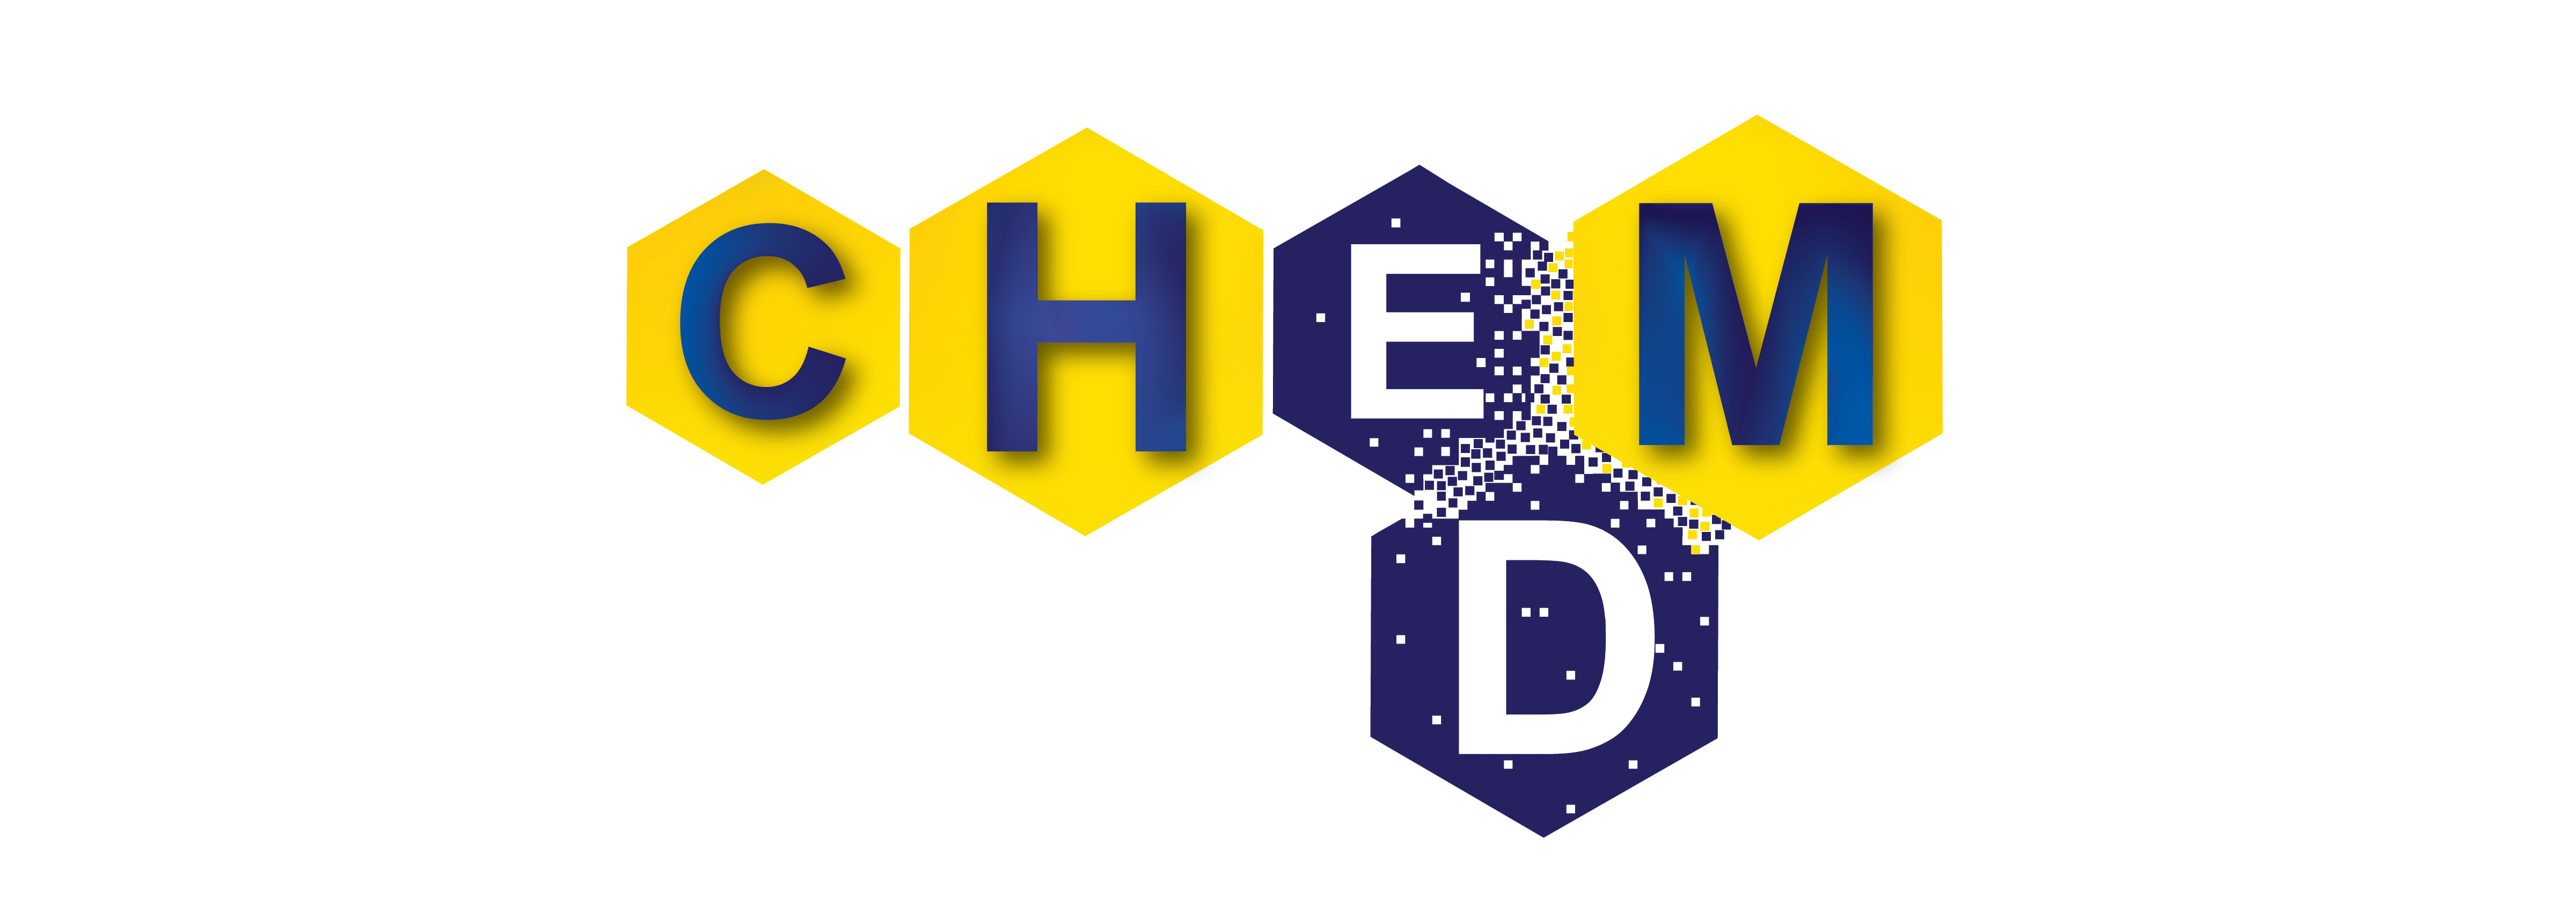 ChemEd 2017 Abstracts